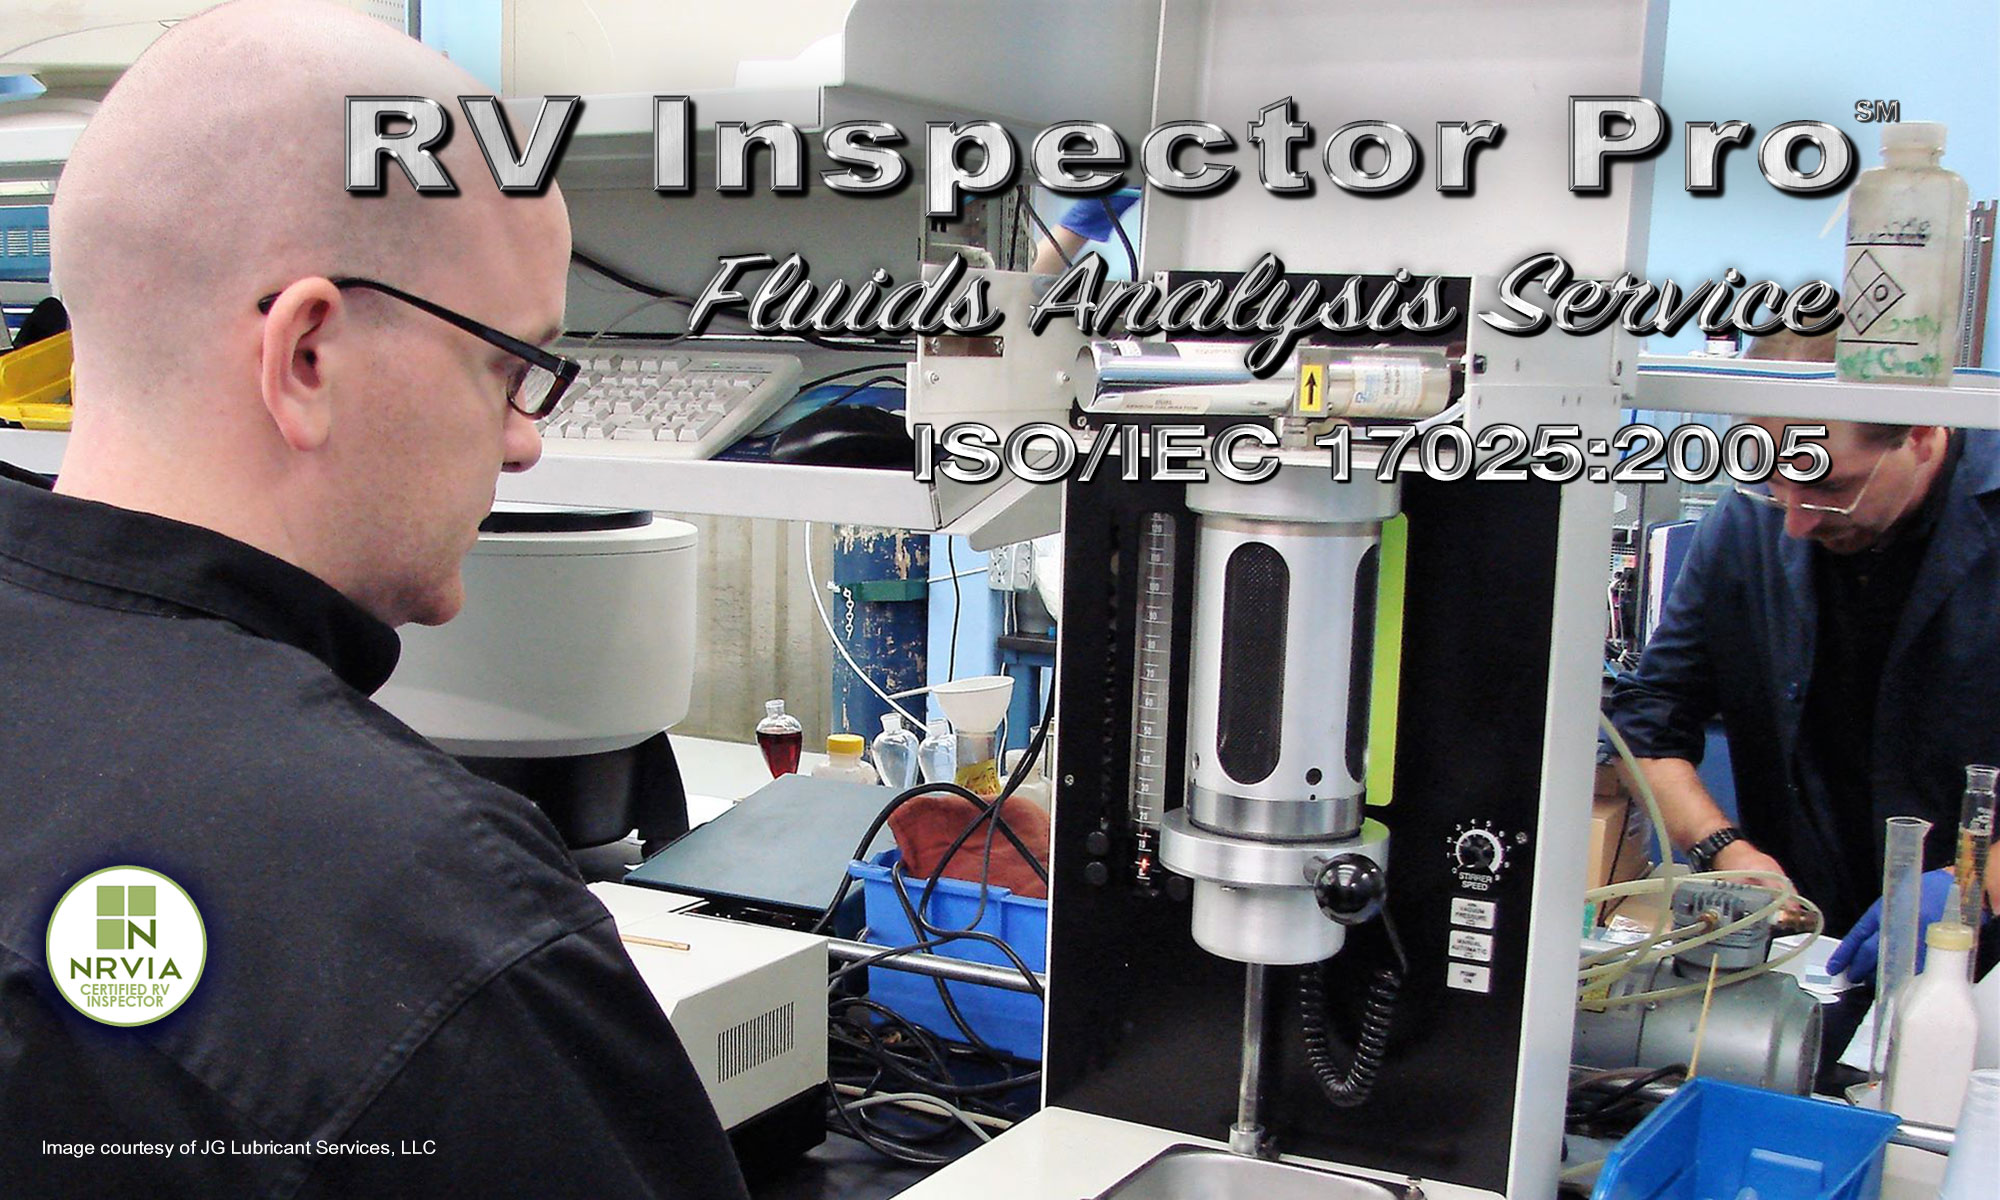 Ask for the RV Inspector Pro Fluid Analysis Service.